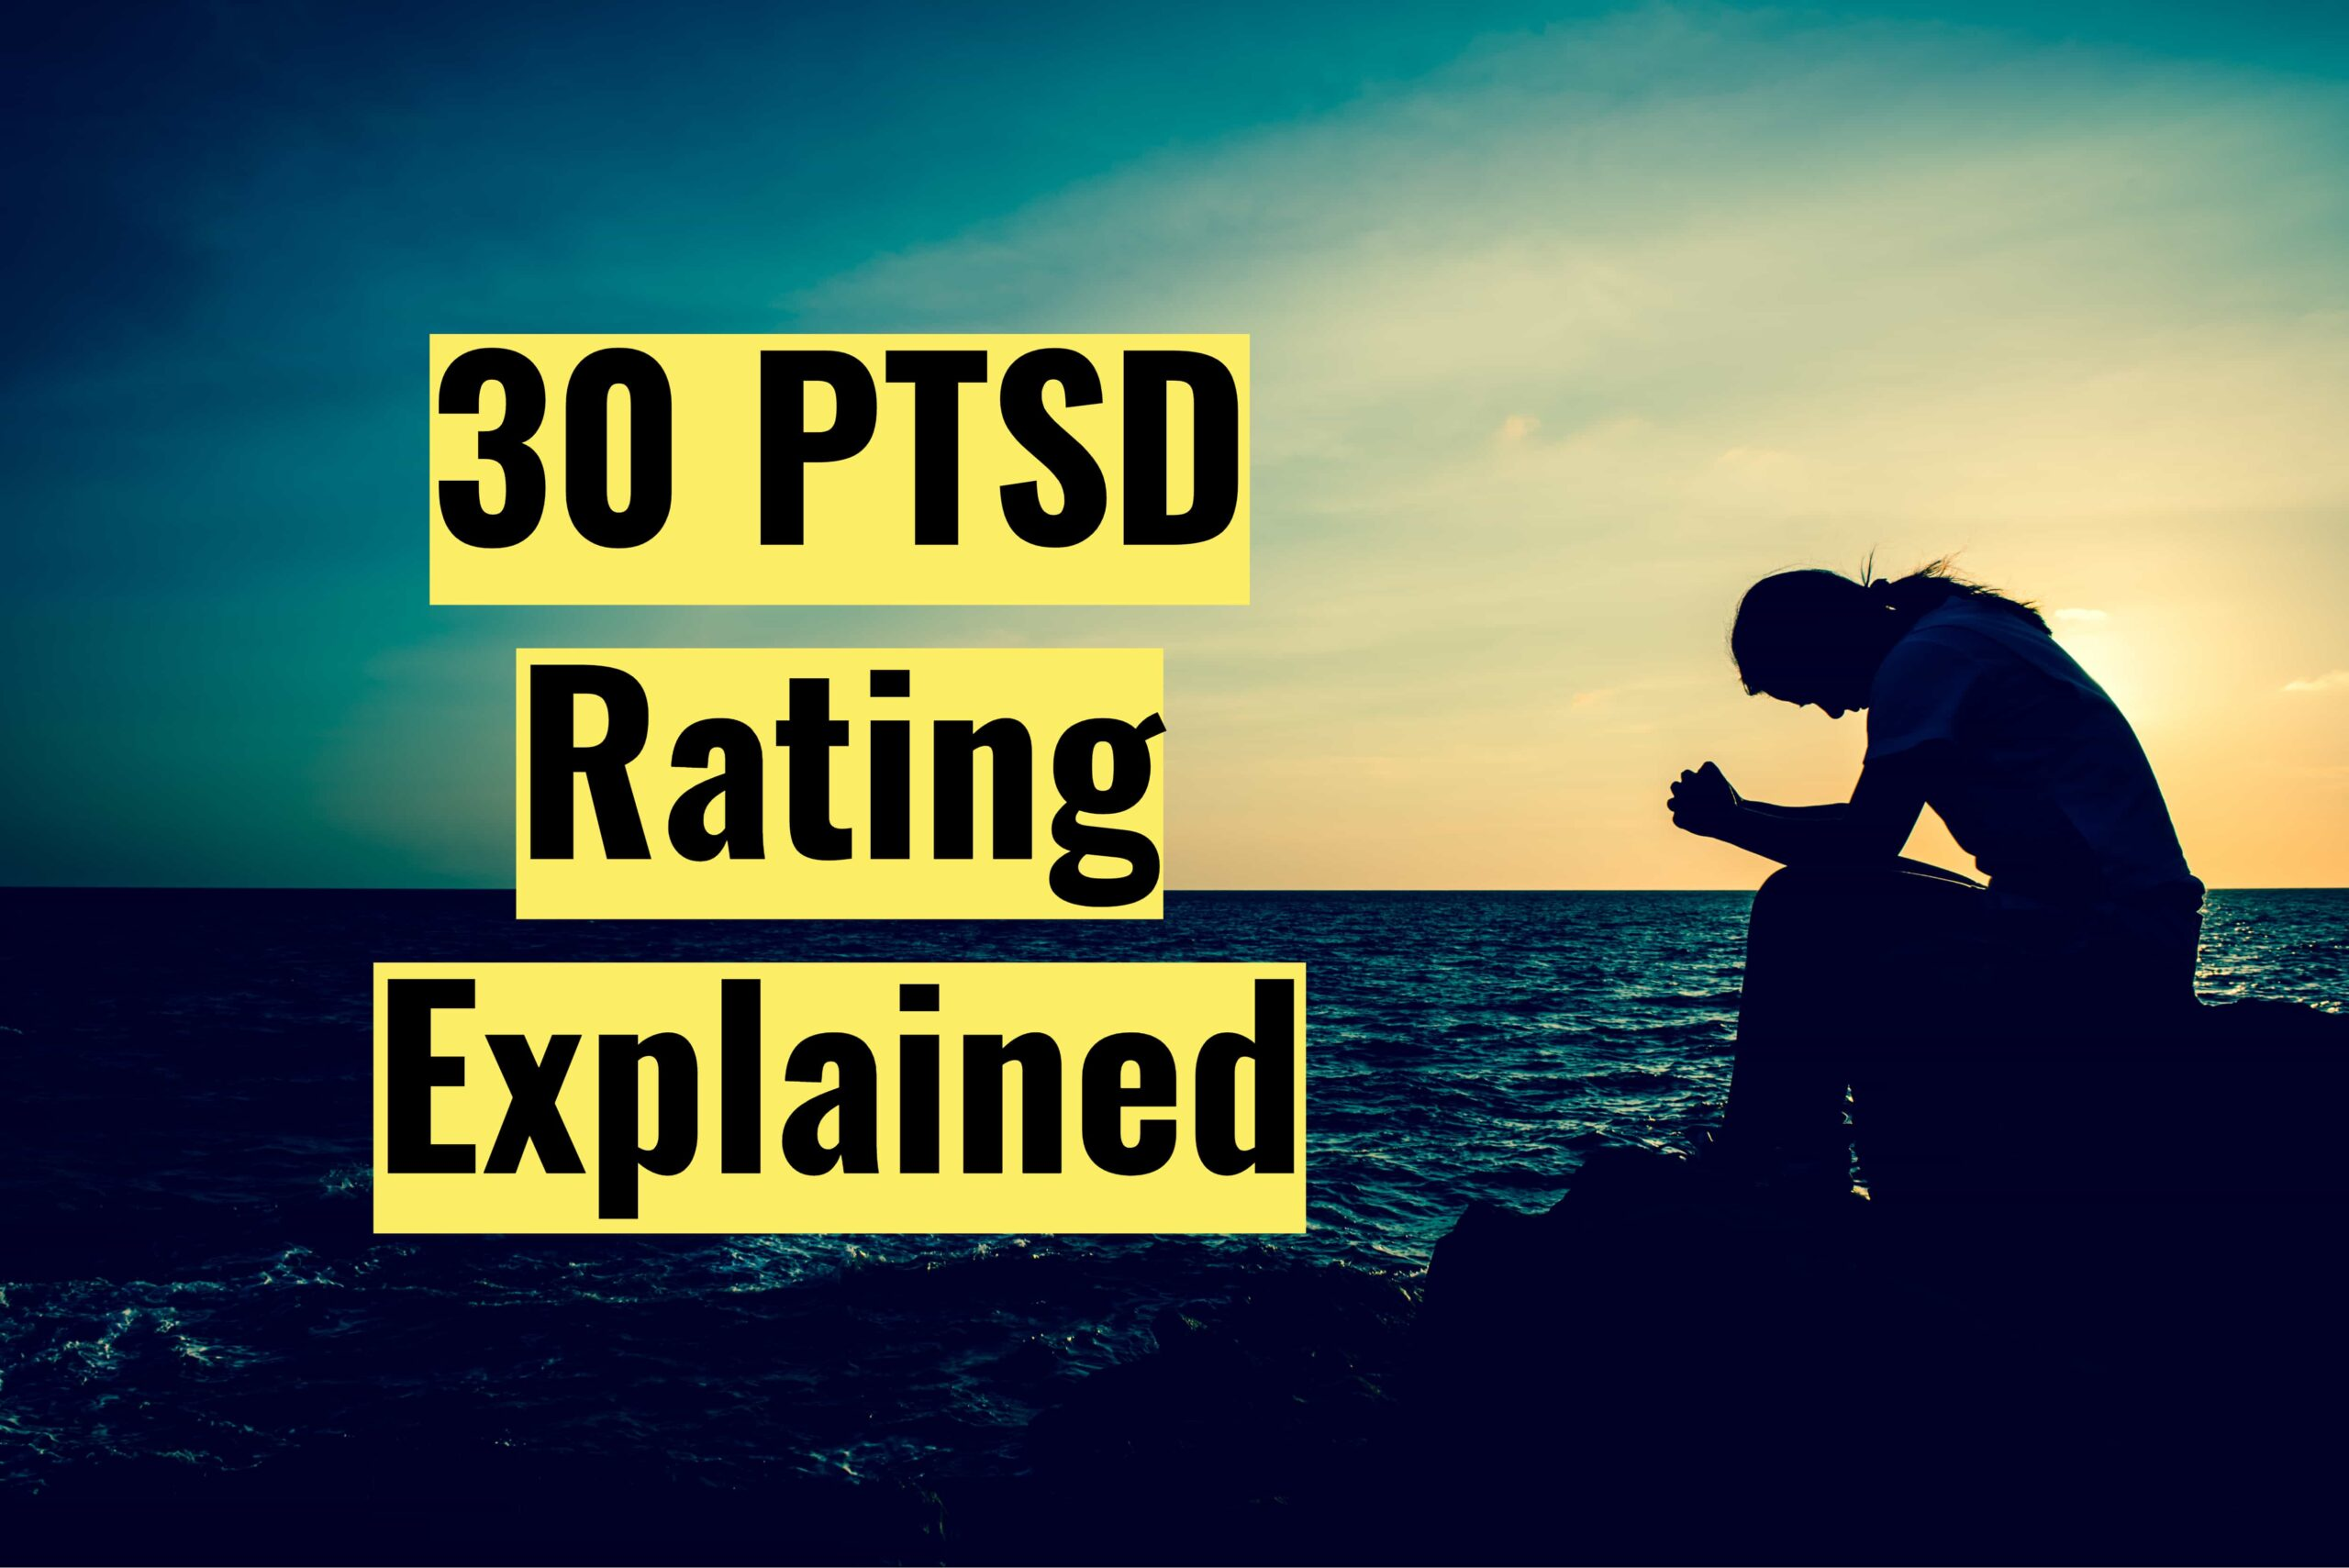 30 PTSD Rating Explained - VA Claims Insider